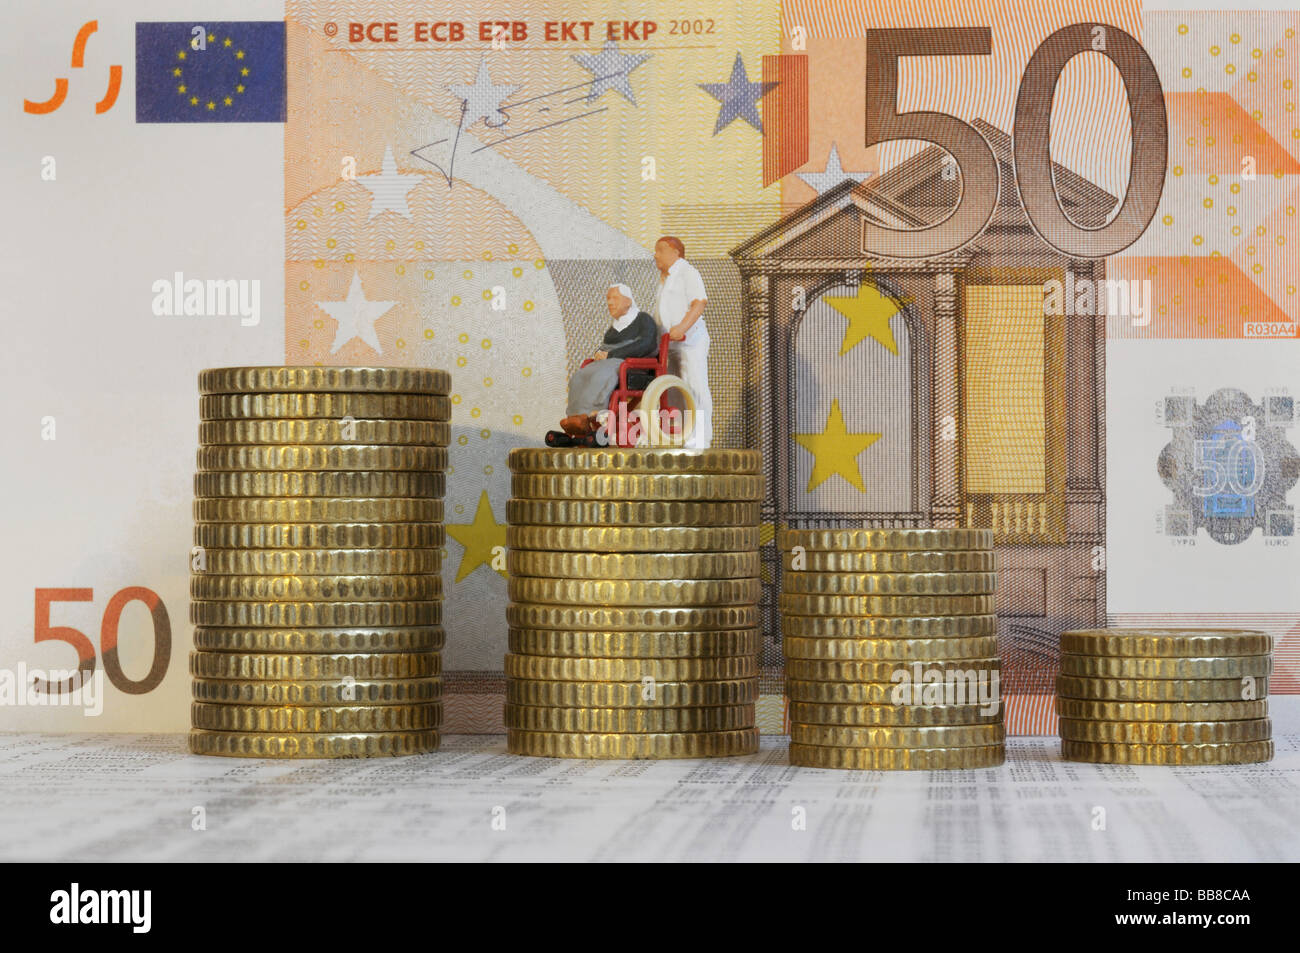 Stacked coins, 50 euro banknotes at back, attendant pushing senior citizen in wheelchair, figures, symbolic of increase - Stock Image